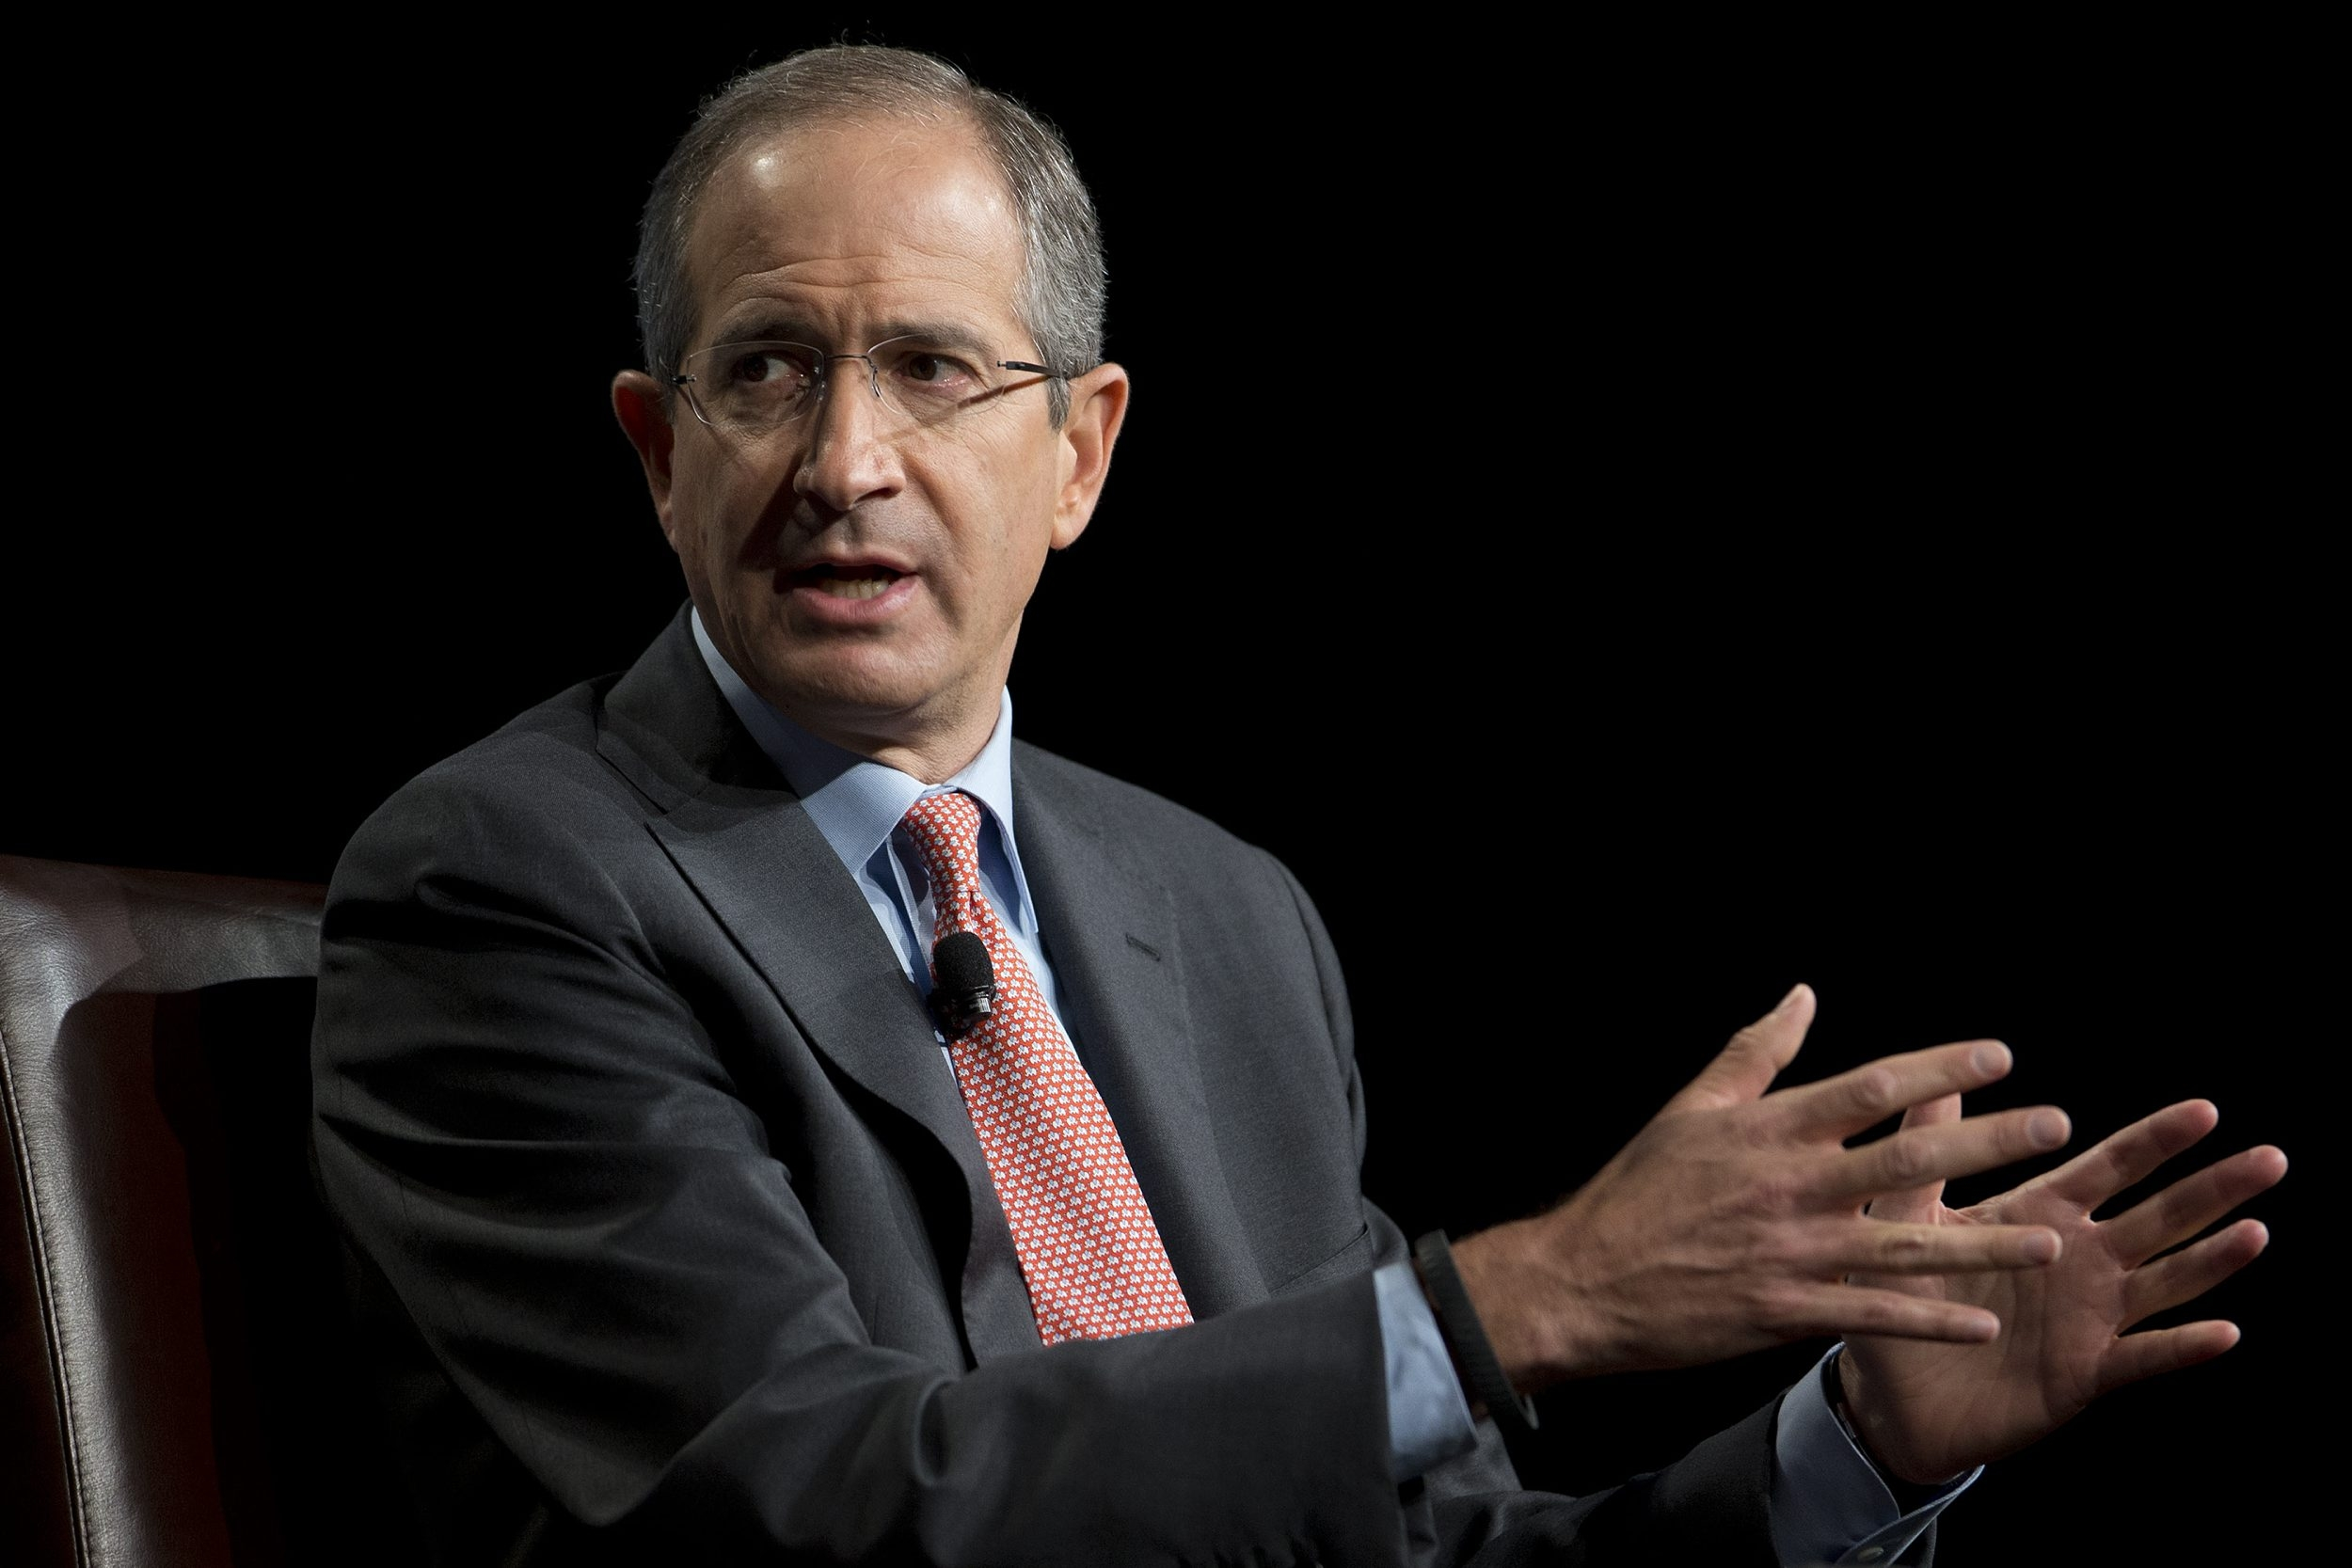 Comcast Chairman and CEO Brian Roberts initially rebuffed merger with Time Warner Cable.